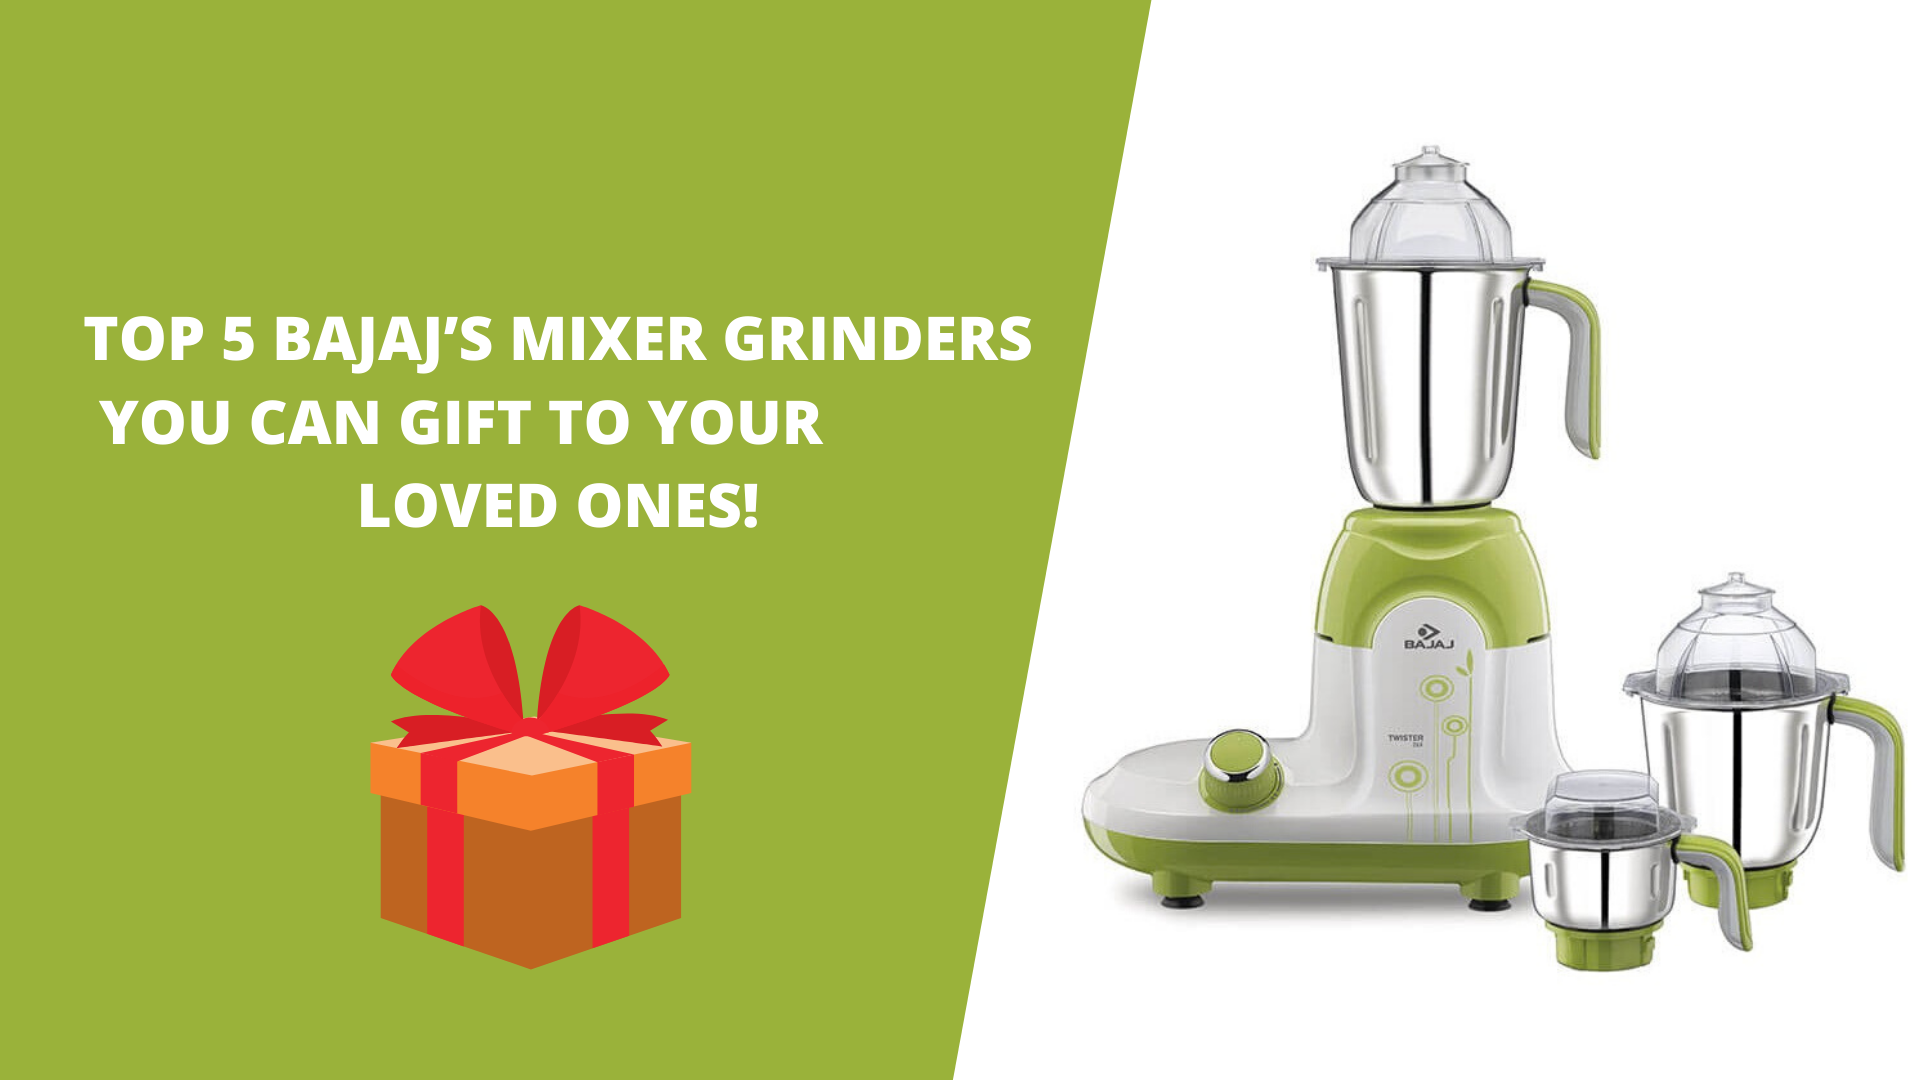 Top 5 Bajaj's Mixer Grinders You can Gift to Your Loved Ones!